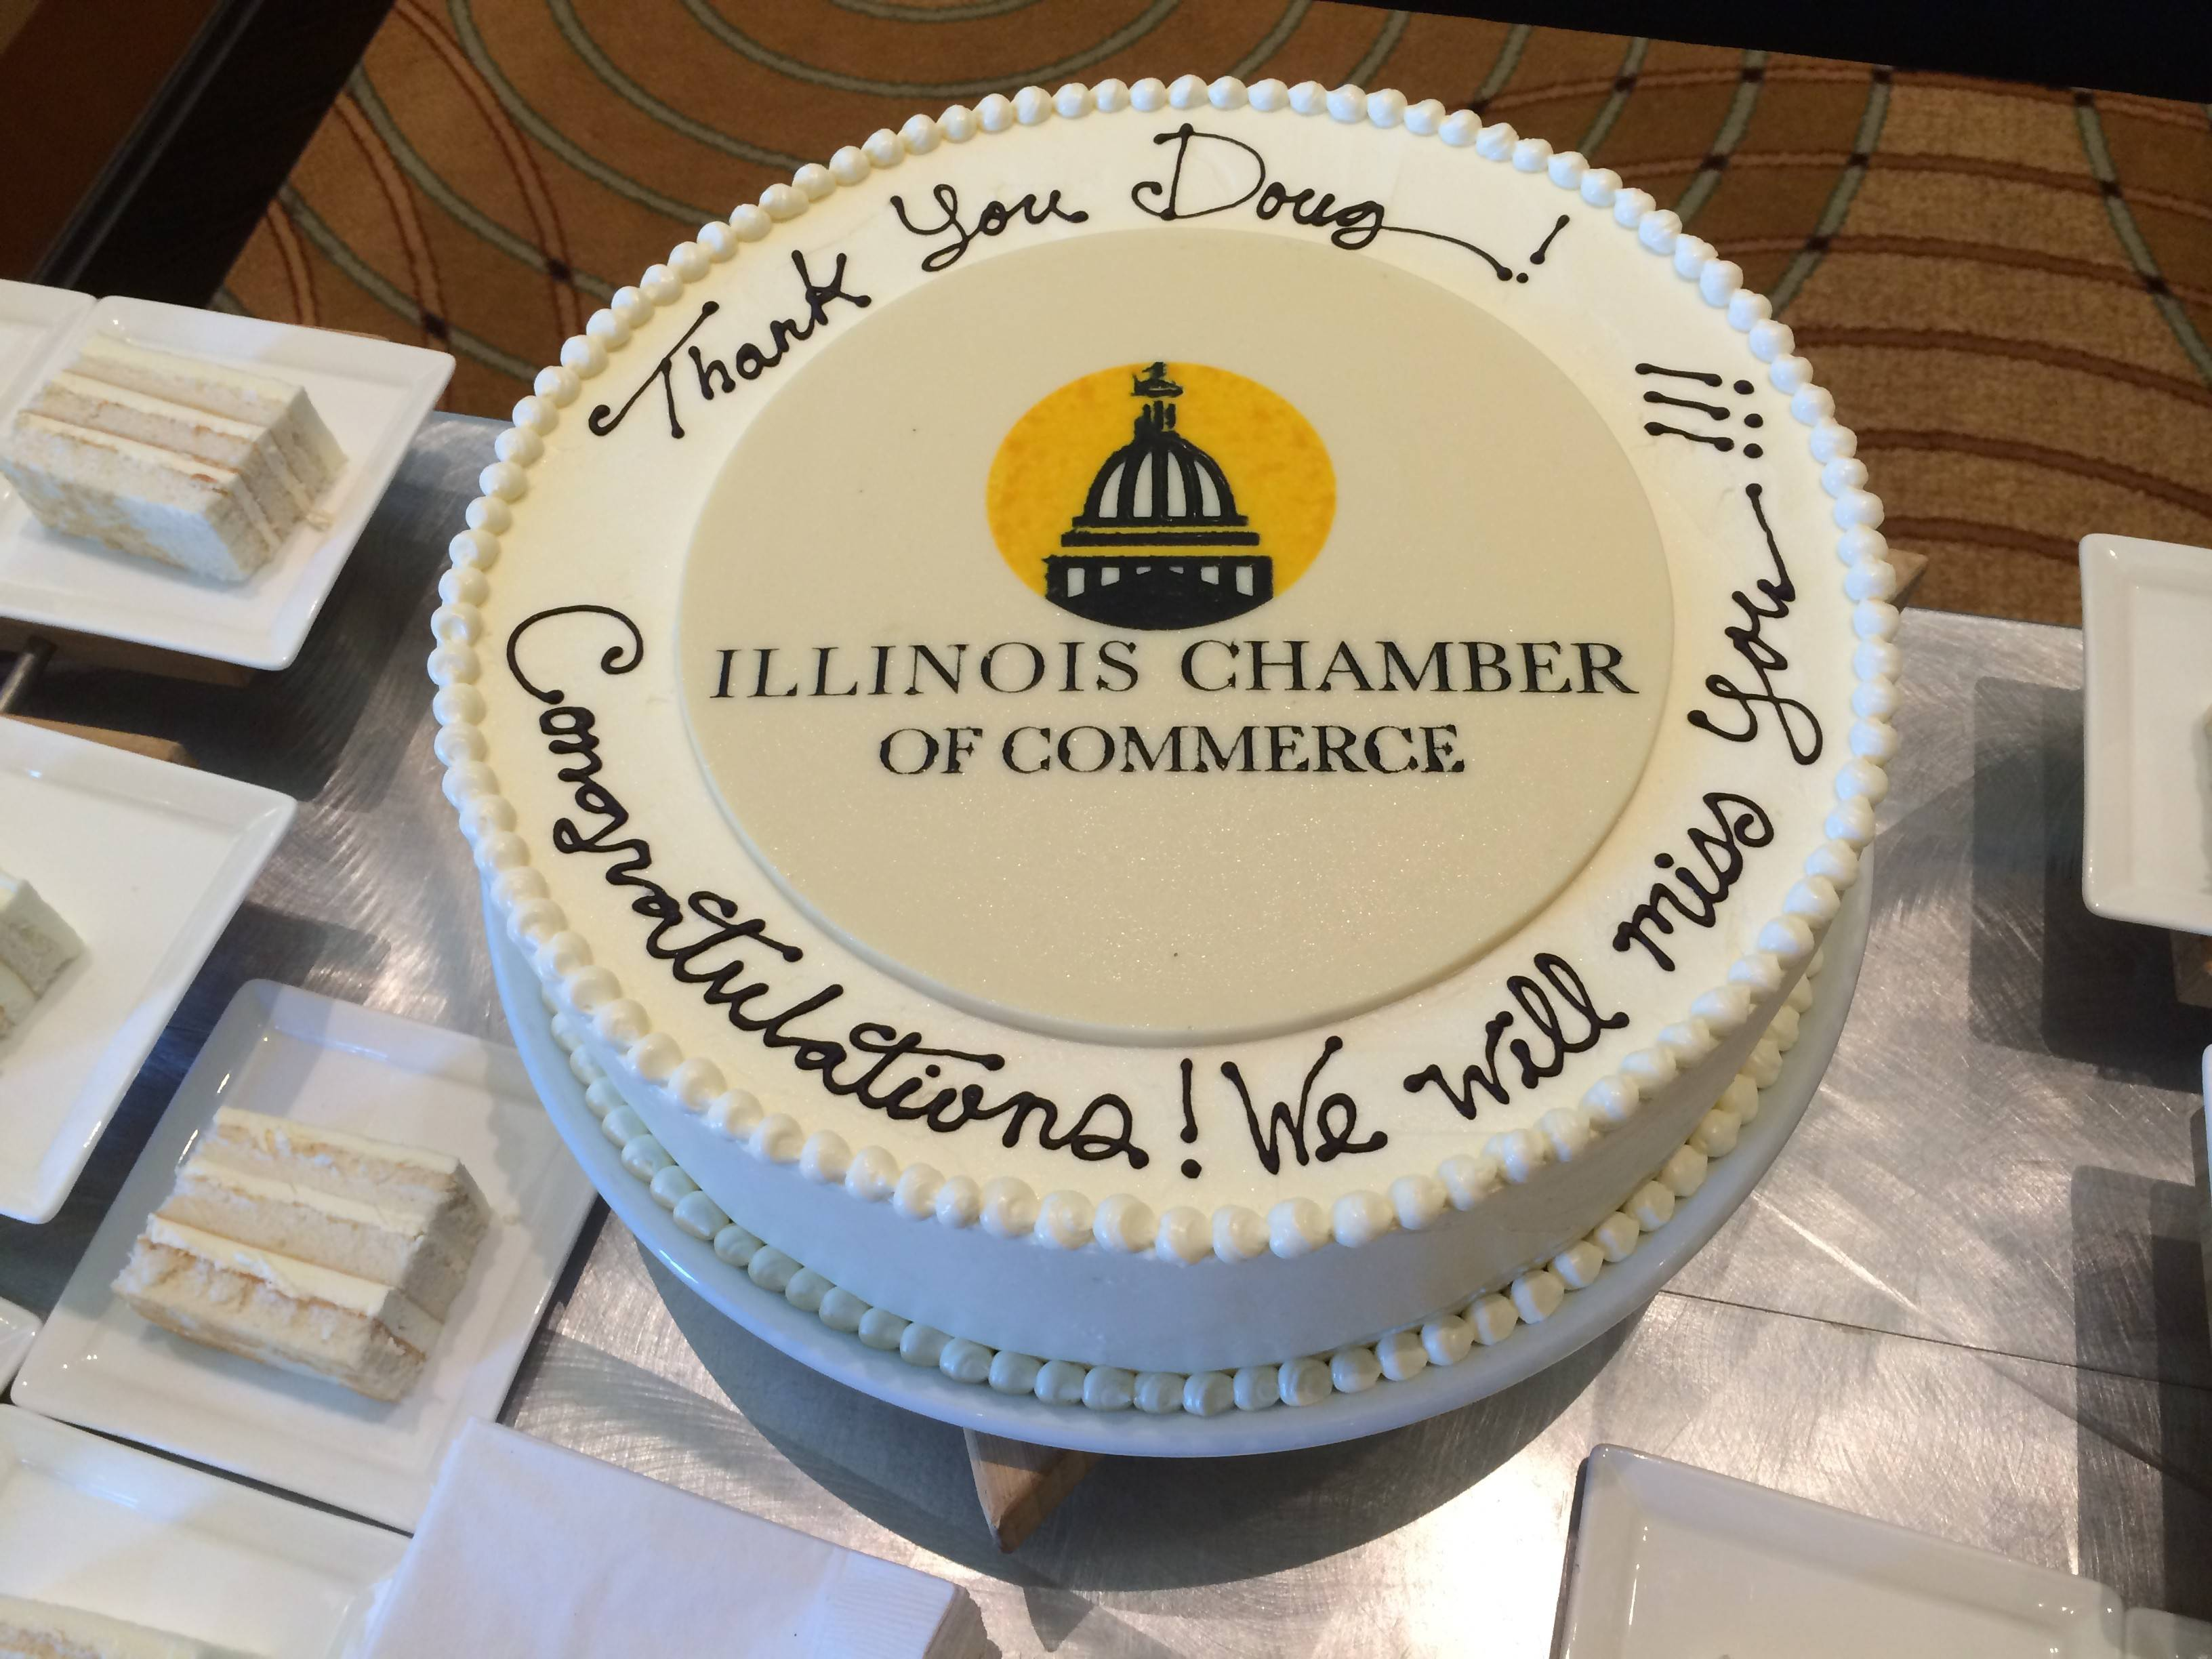 Illinois Chamber of Chamber's outgoing CEO Doug Whitley said a fond farewell to staff and members Thursday during the group's annual meeting. Cake was waiting for him in the lobby.